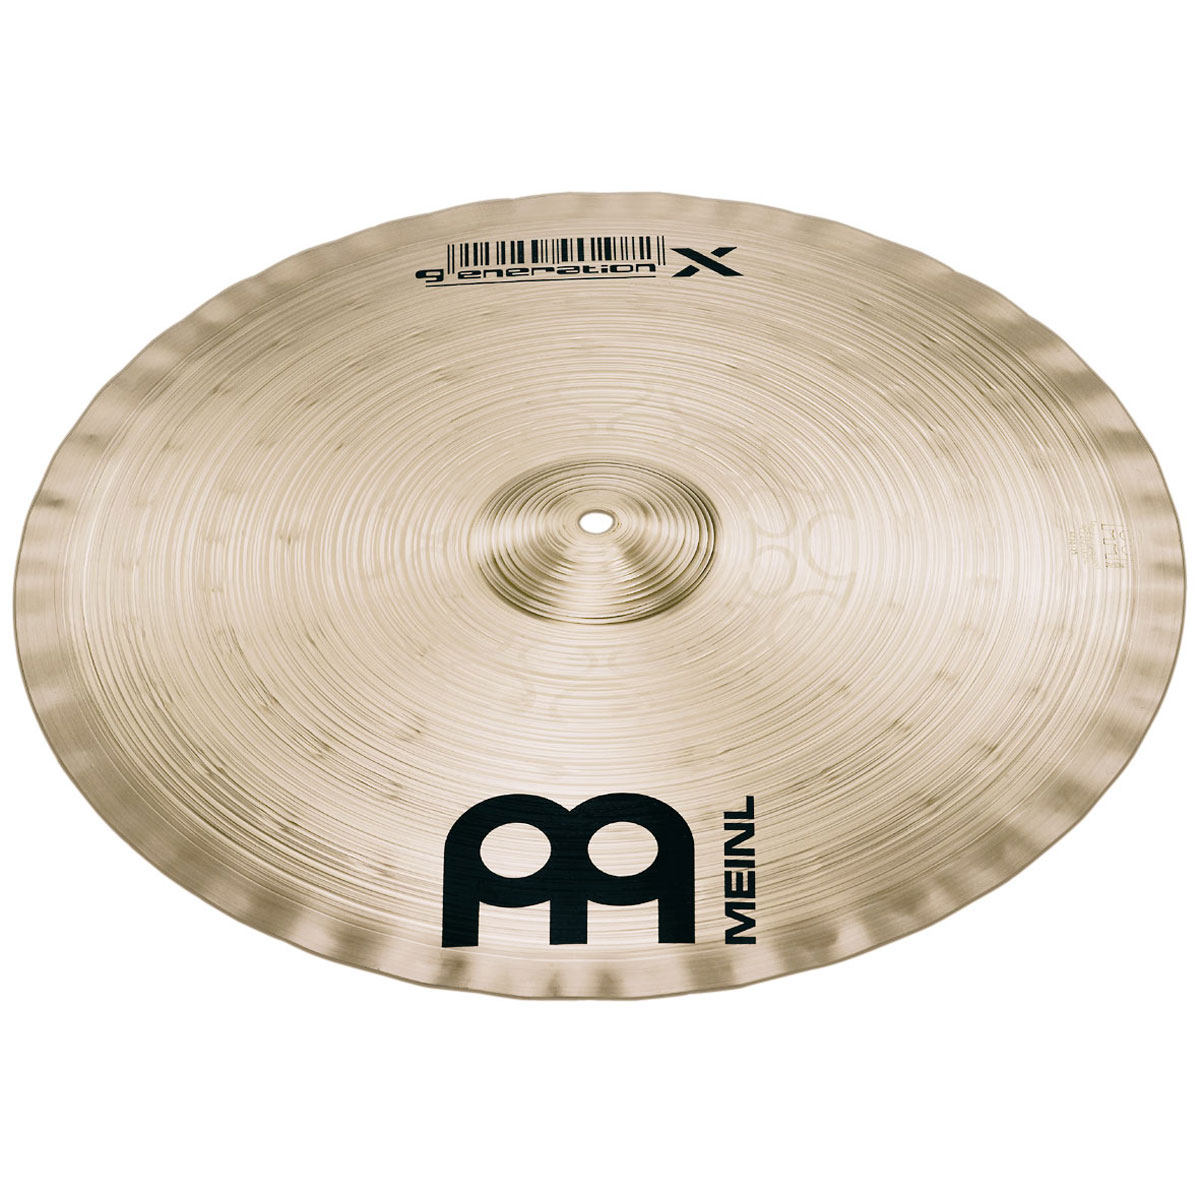 "Meinl 17"" Generation X Kompressor Crash Cymbal"